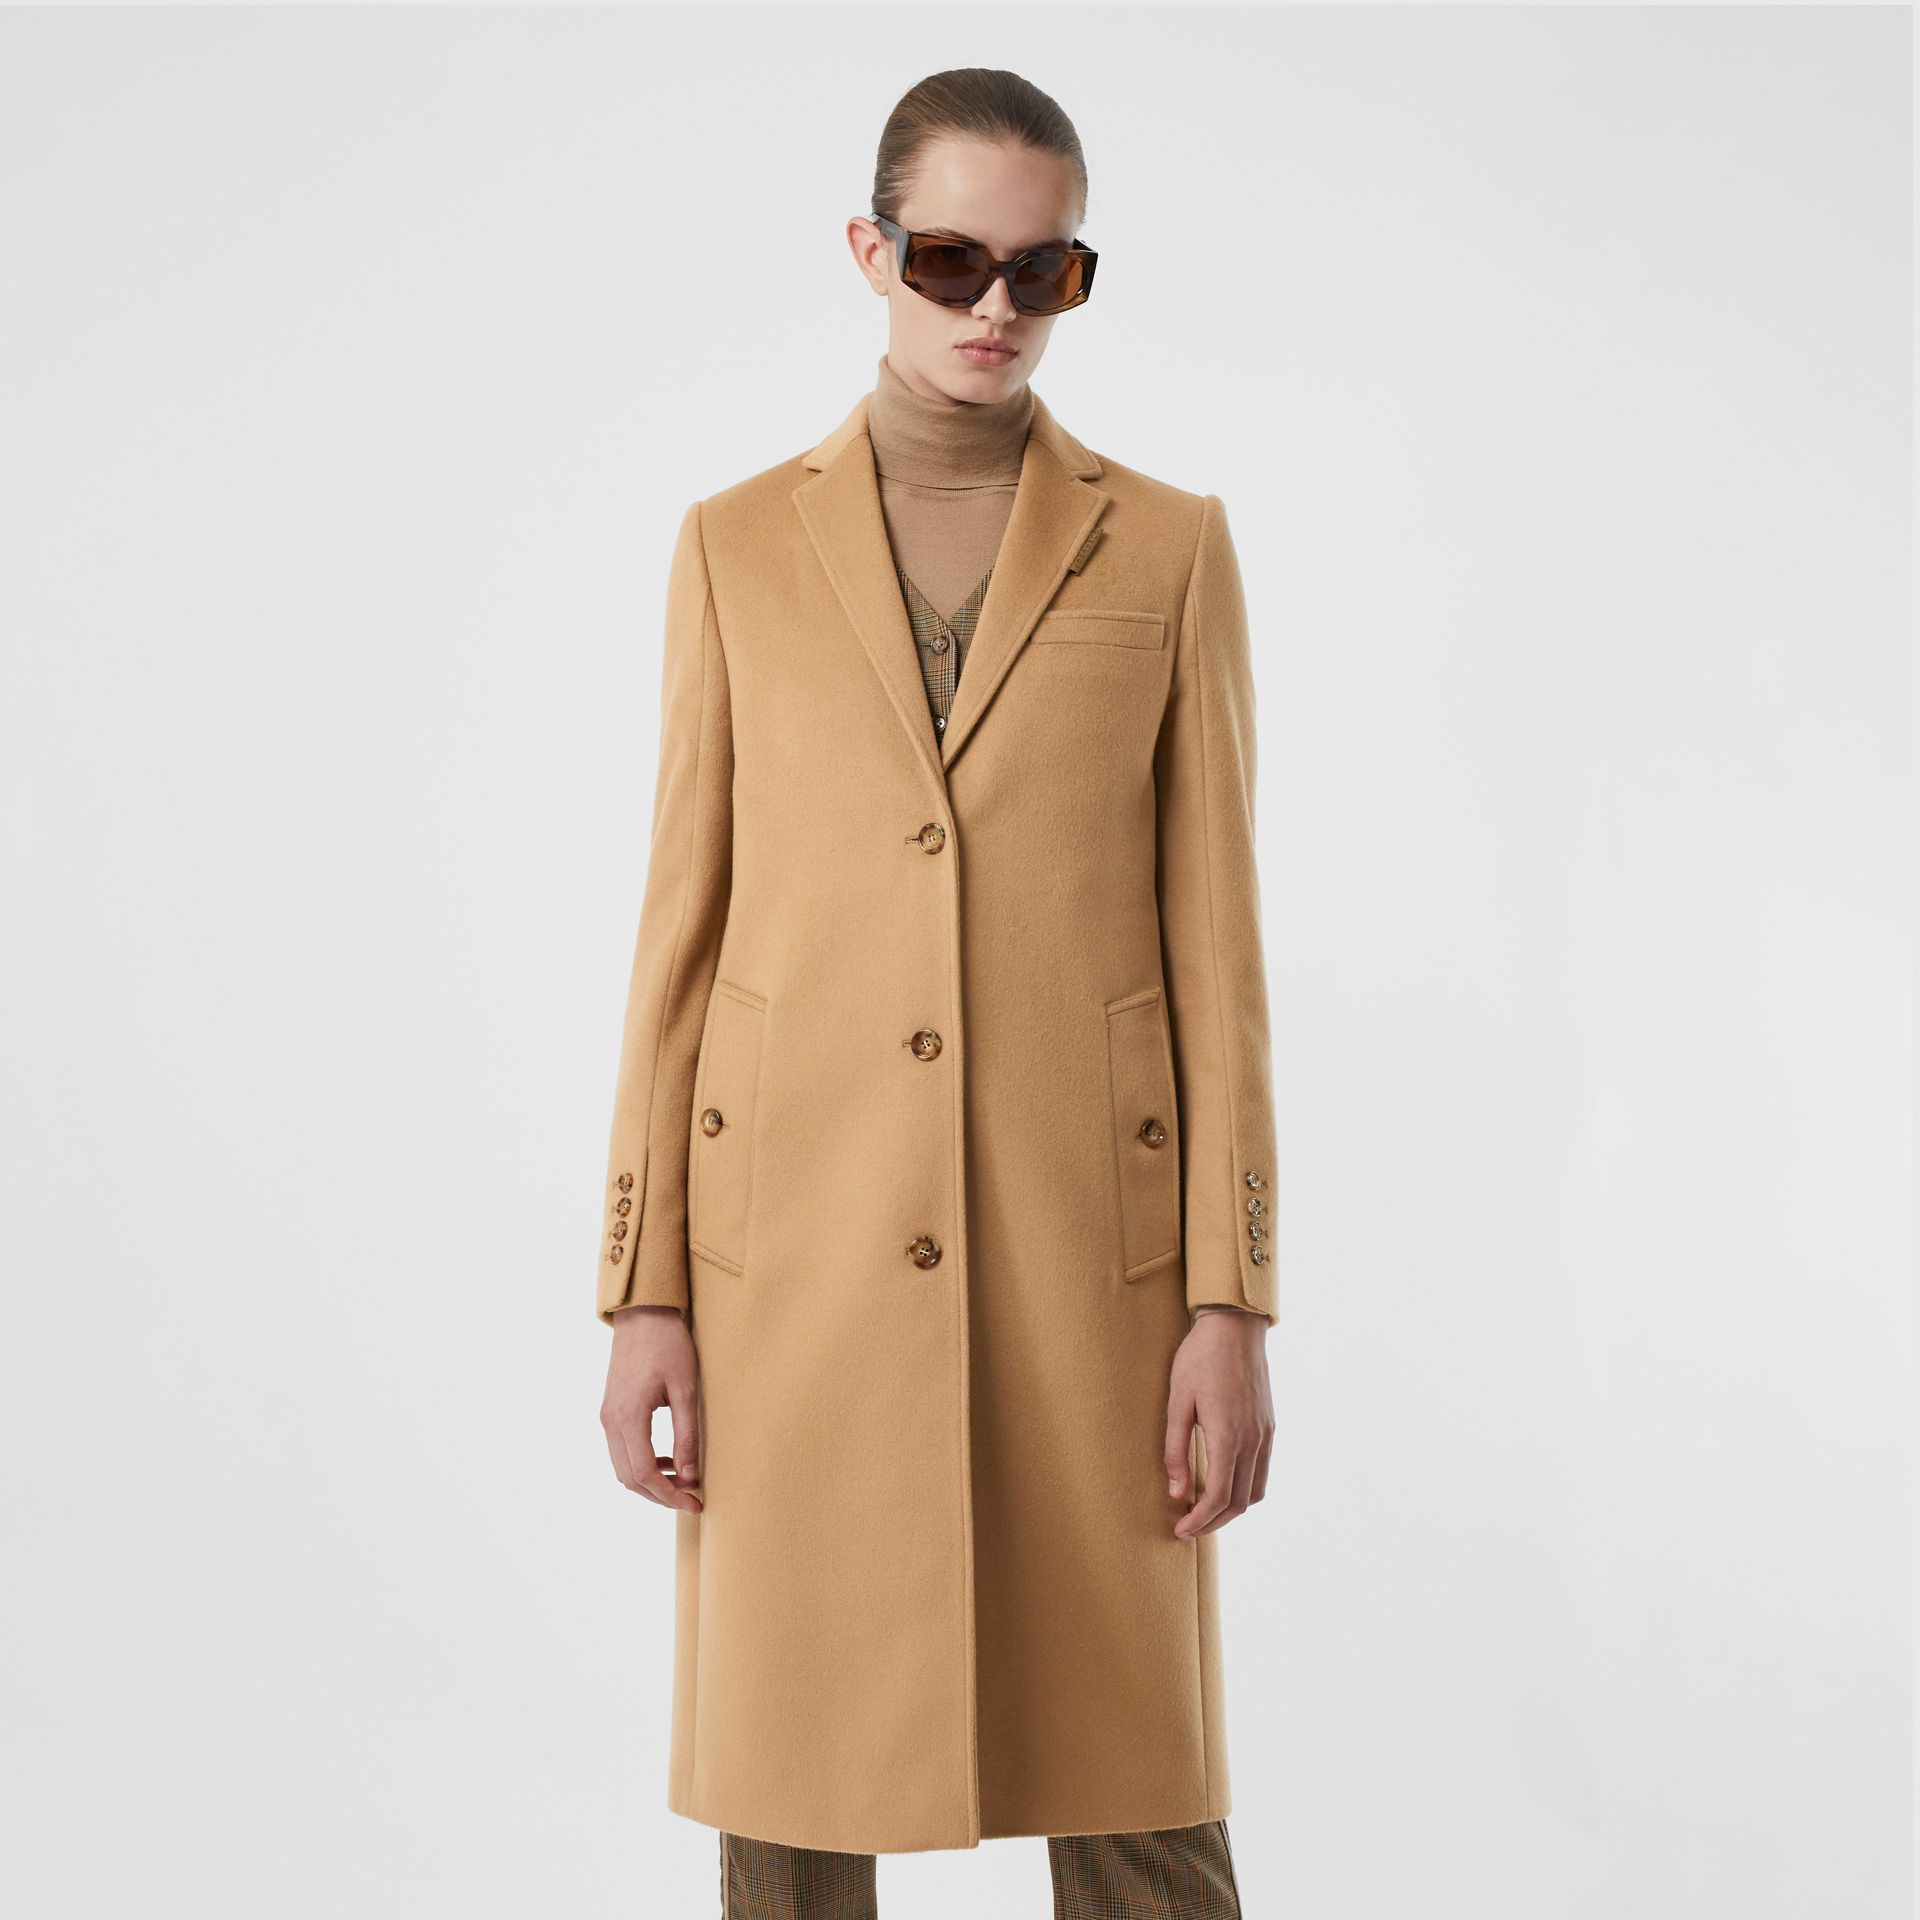 Wool Cashmere Tailored Coat in Light Camel - Women | Burberry United Kingdom - gallery image 6